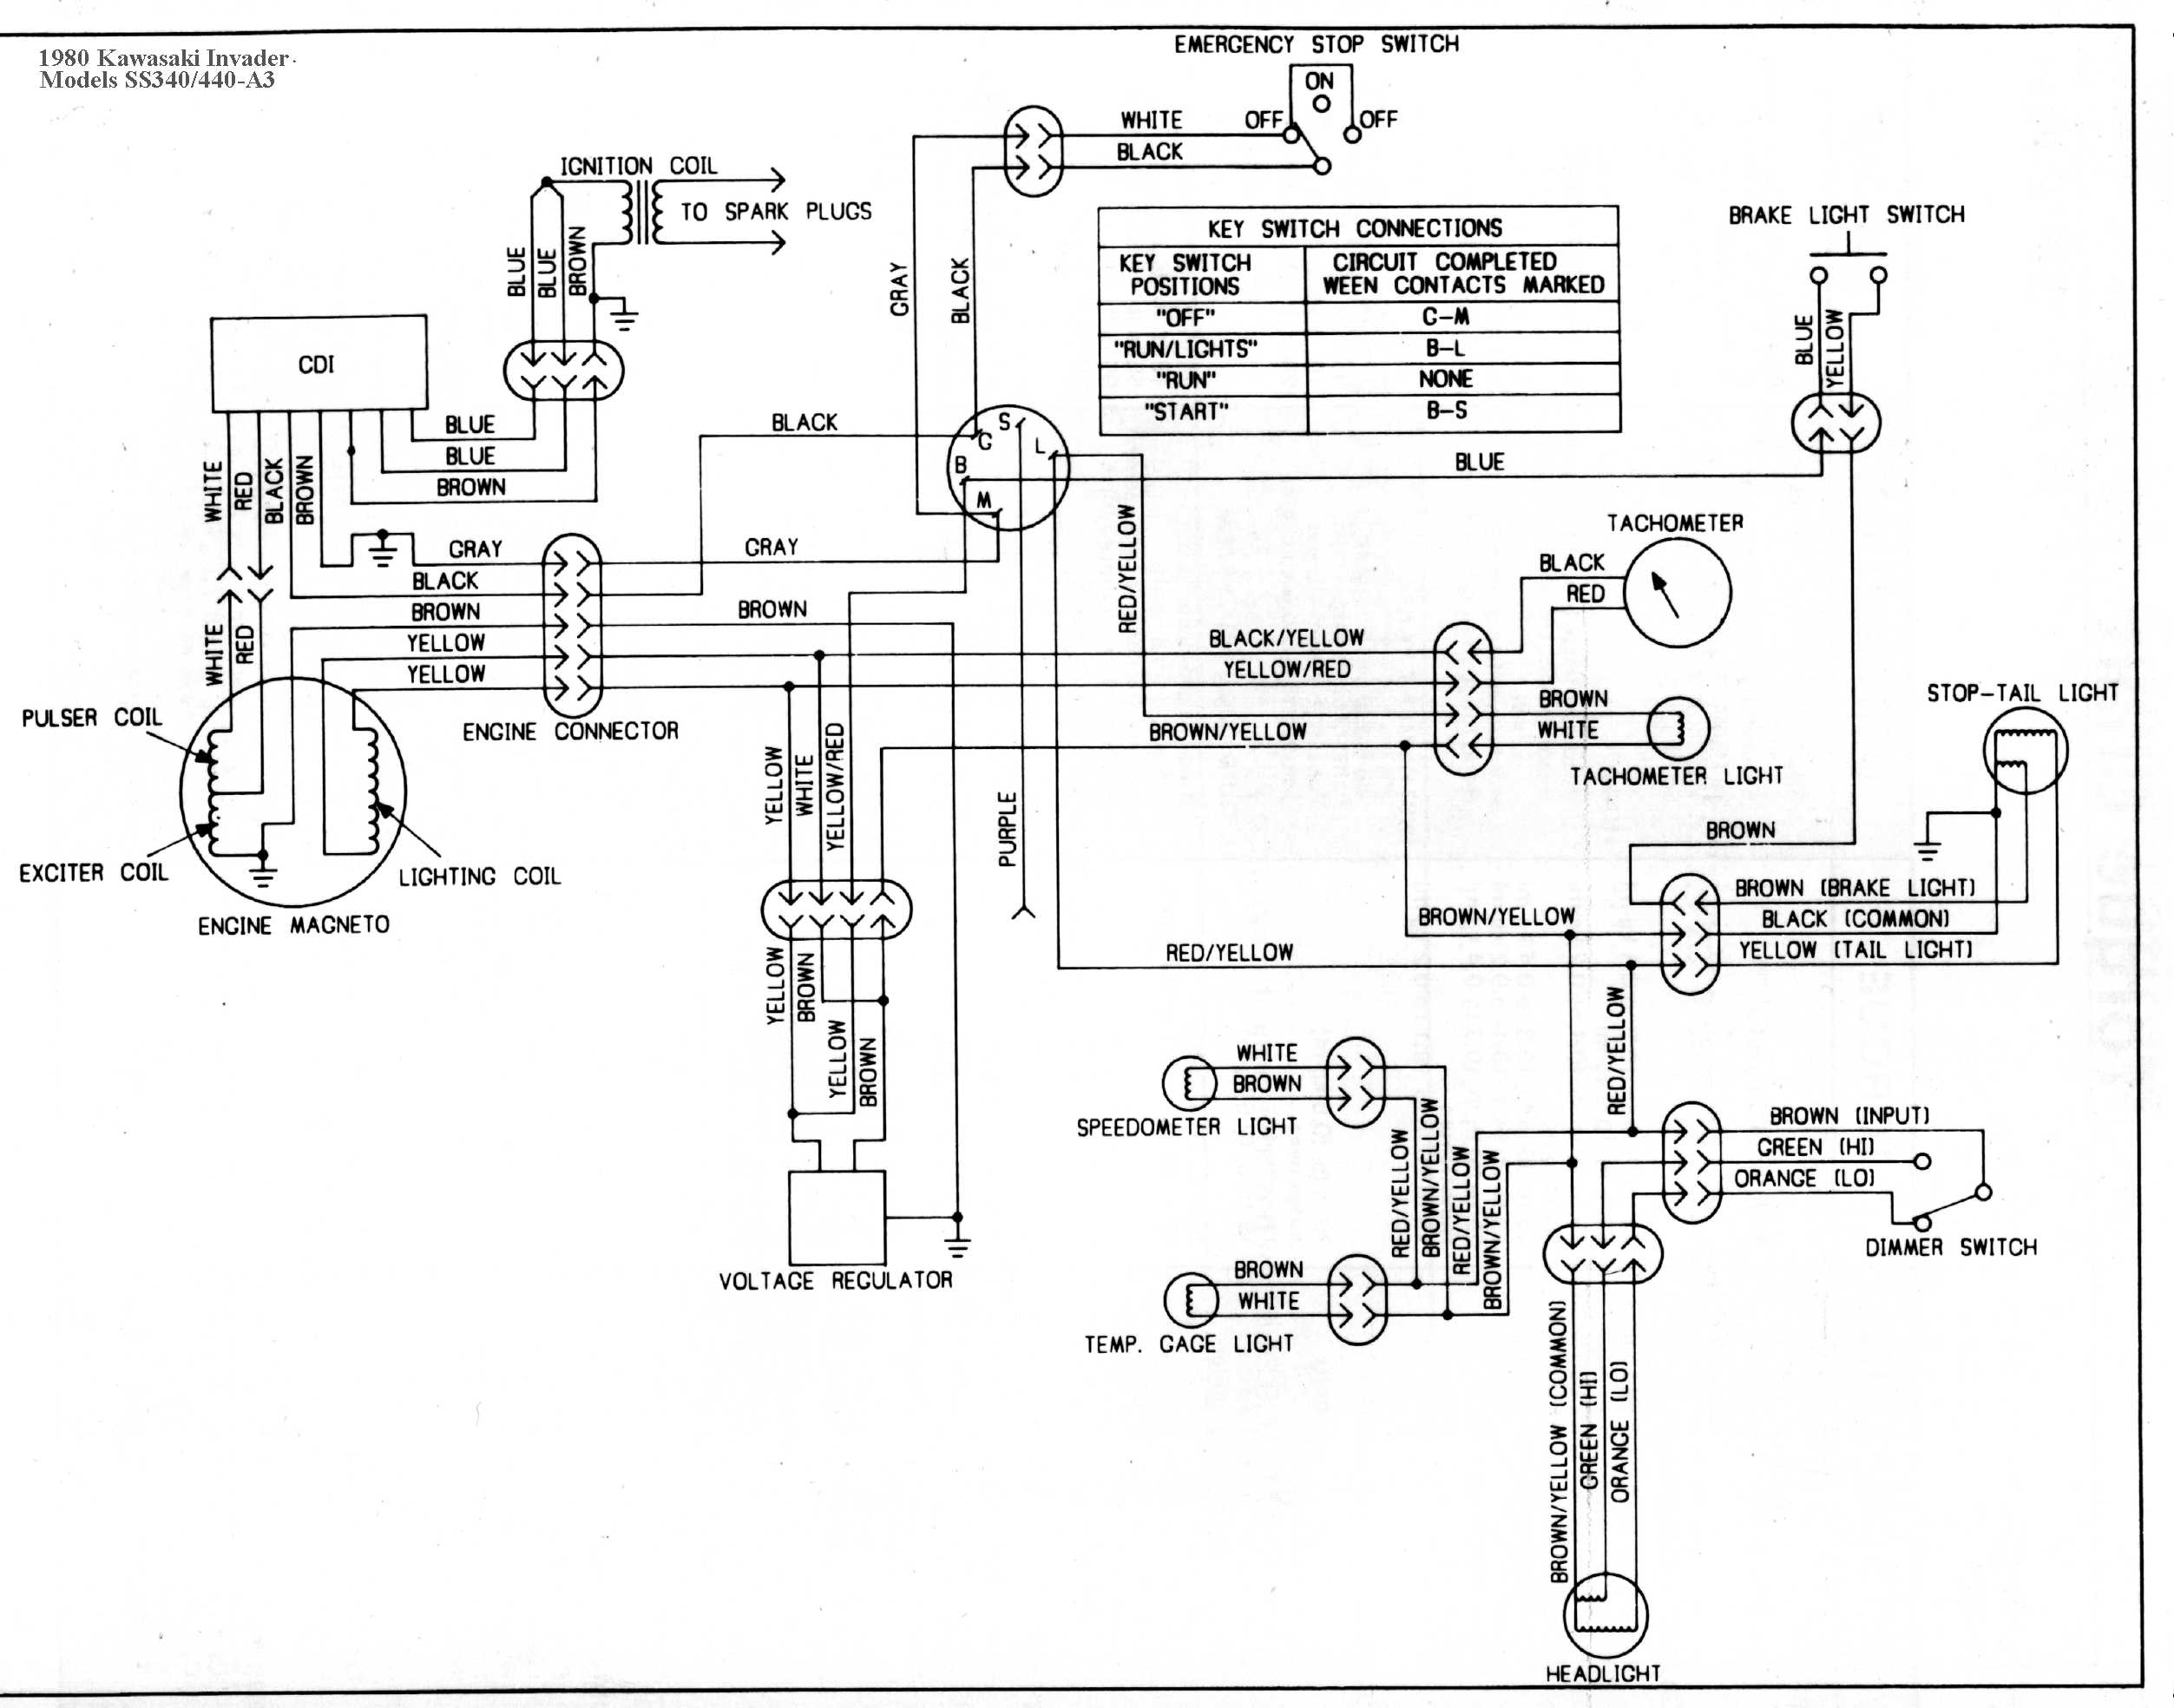 Kawasaki 440 Snowmobile Engine Diagram Kawasaki Free